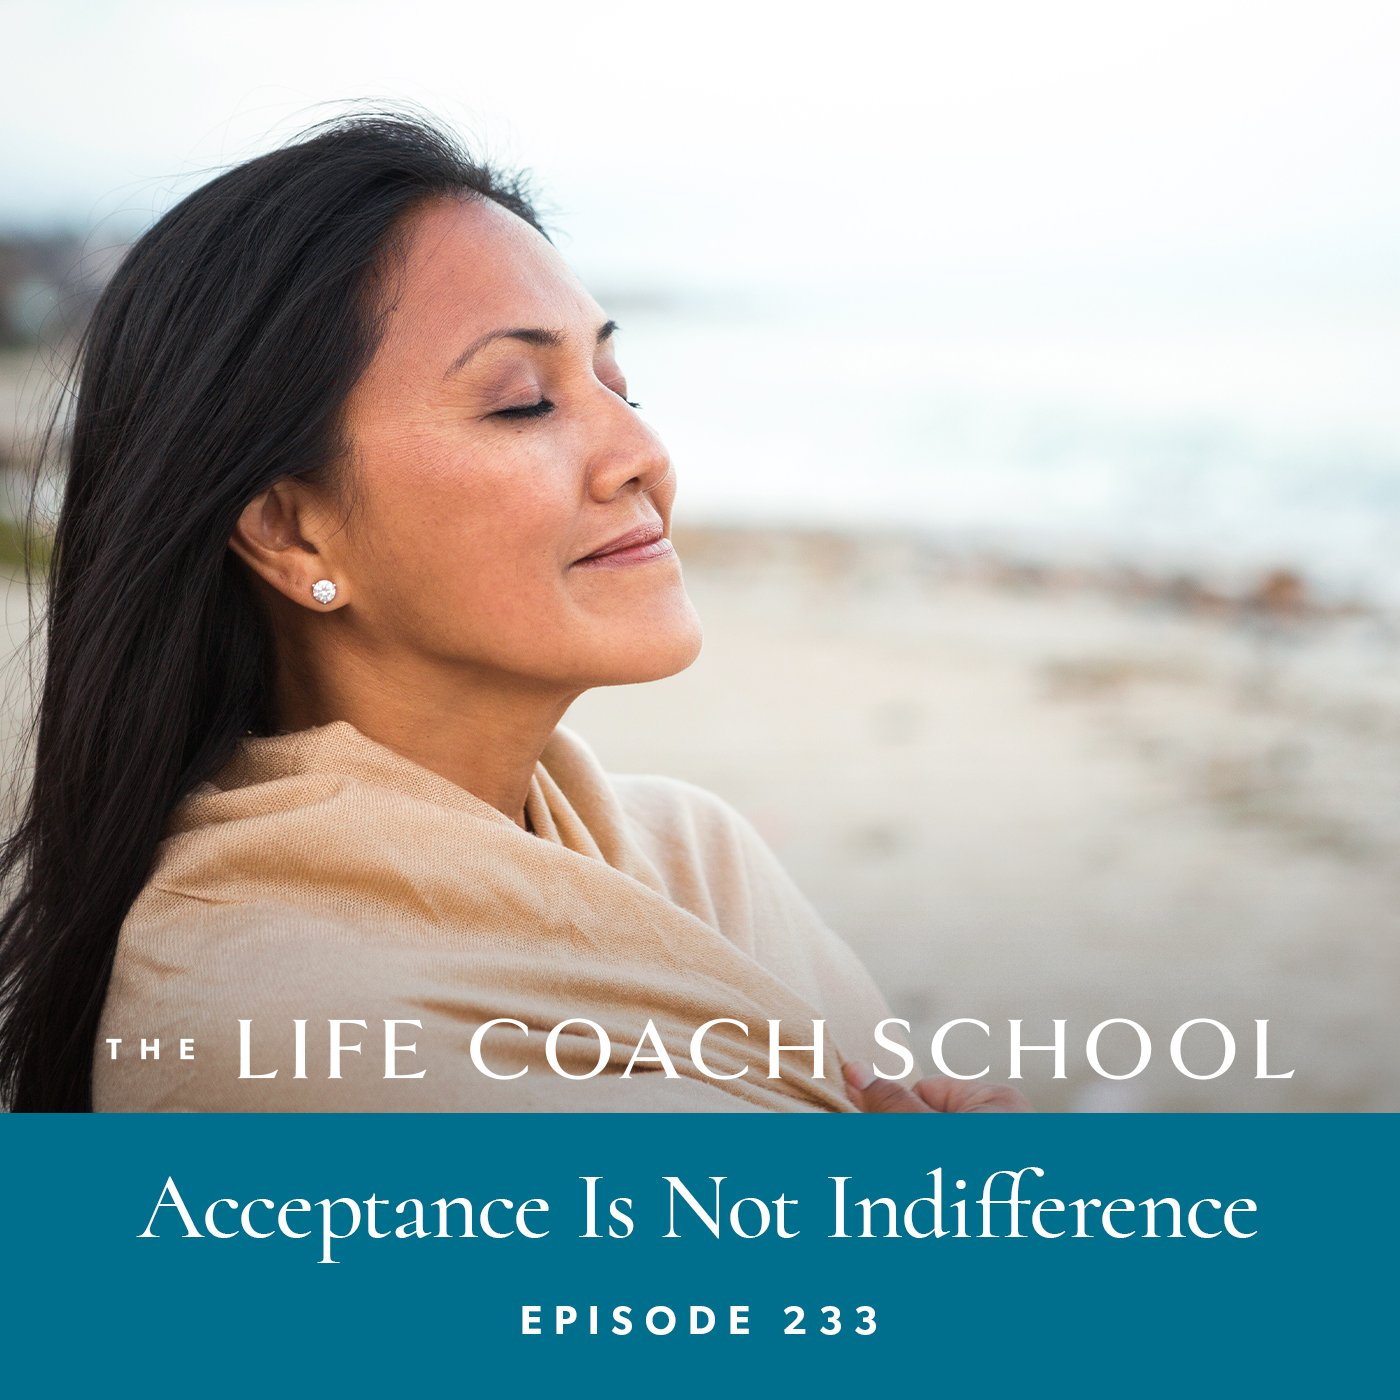 The Life Coach School Podcast with Brooke Castillo   Episode 233   Acceptance Is Not Indifference